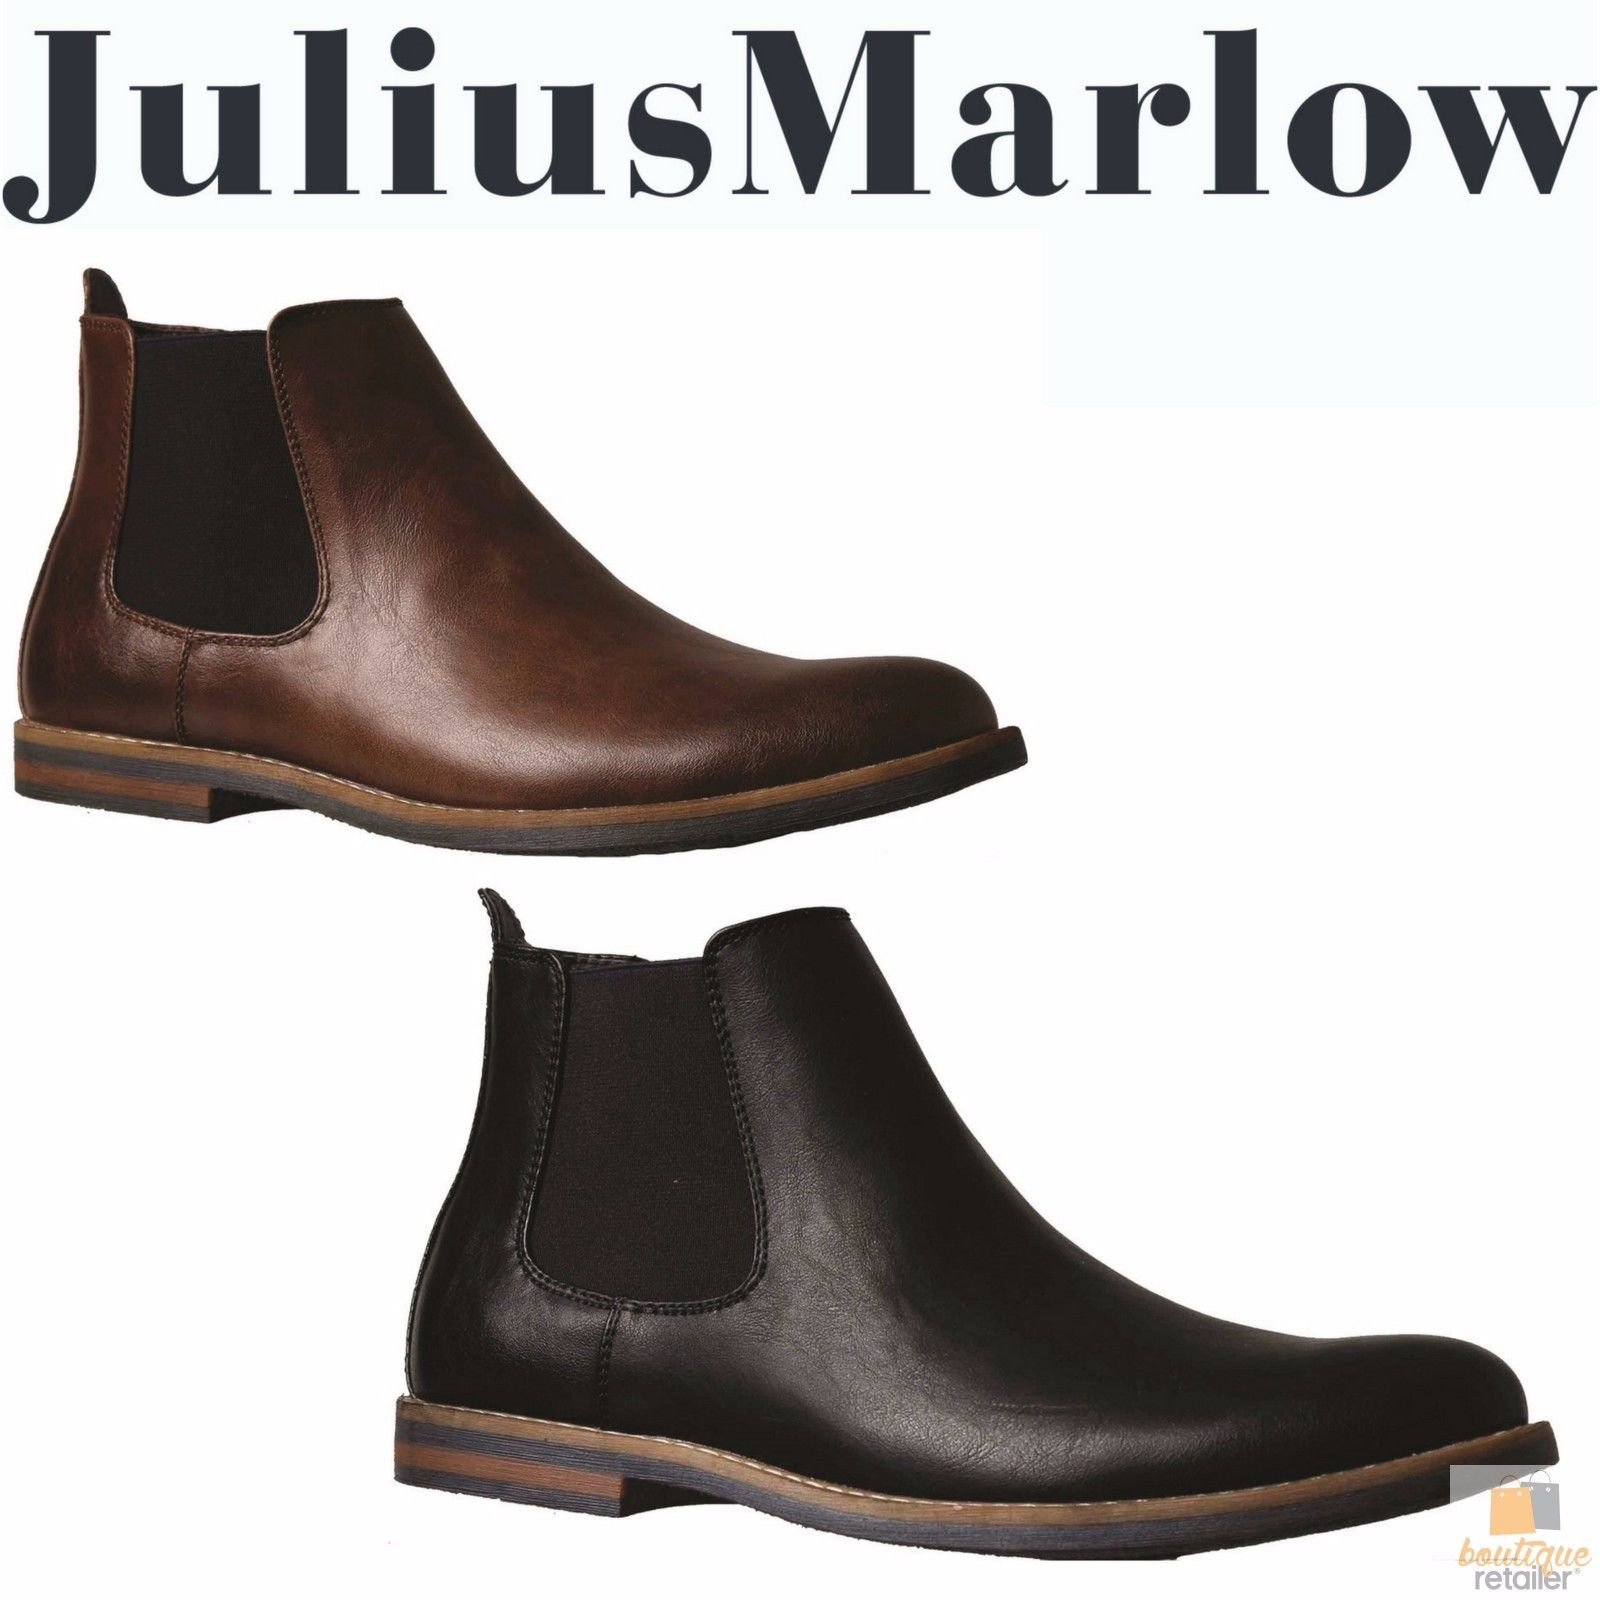 a22cdcb90d08e JULIUS MARLOW JM33 Manny Boots Work Casual Dress Shoes Slip On Men's Chelsea